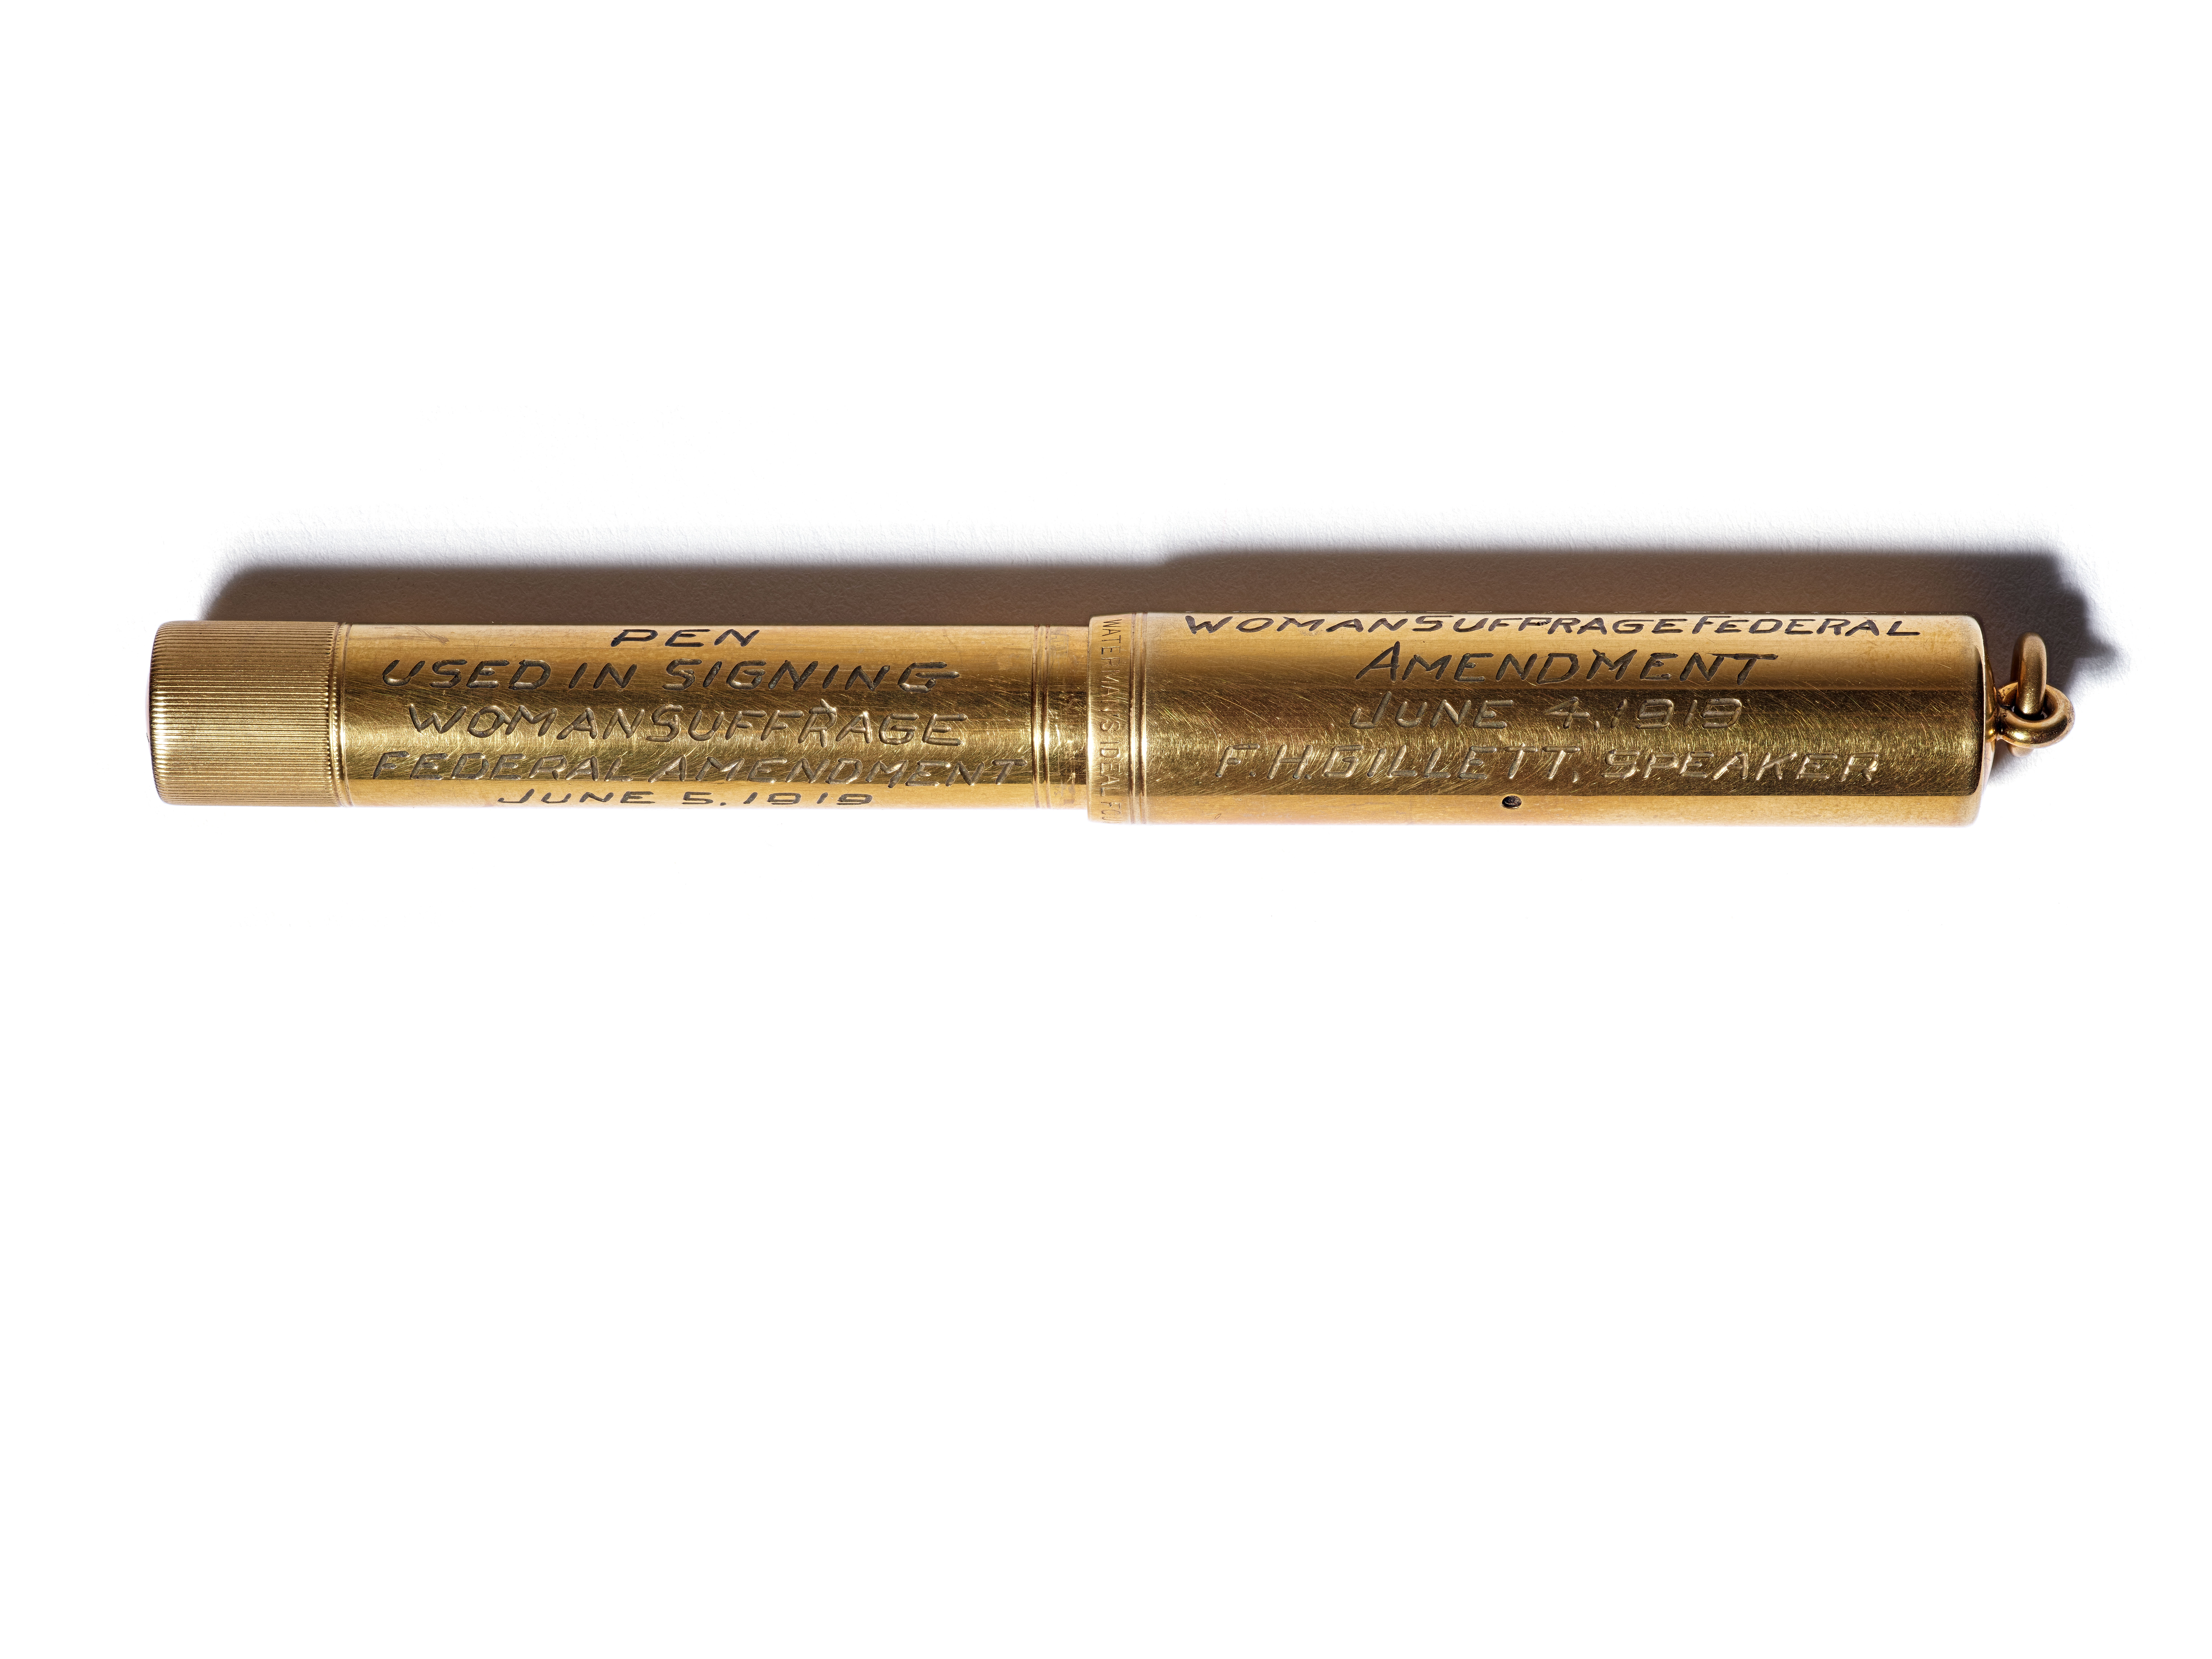 A golden pen with engraving on a white background